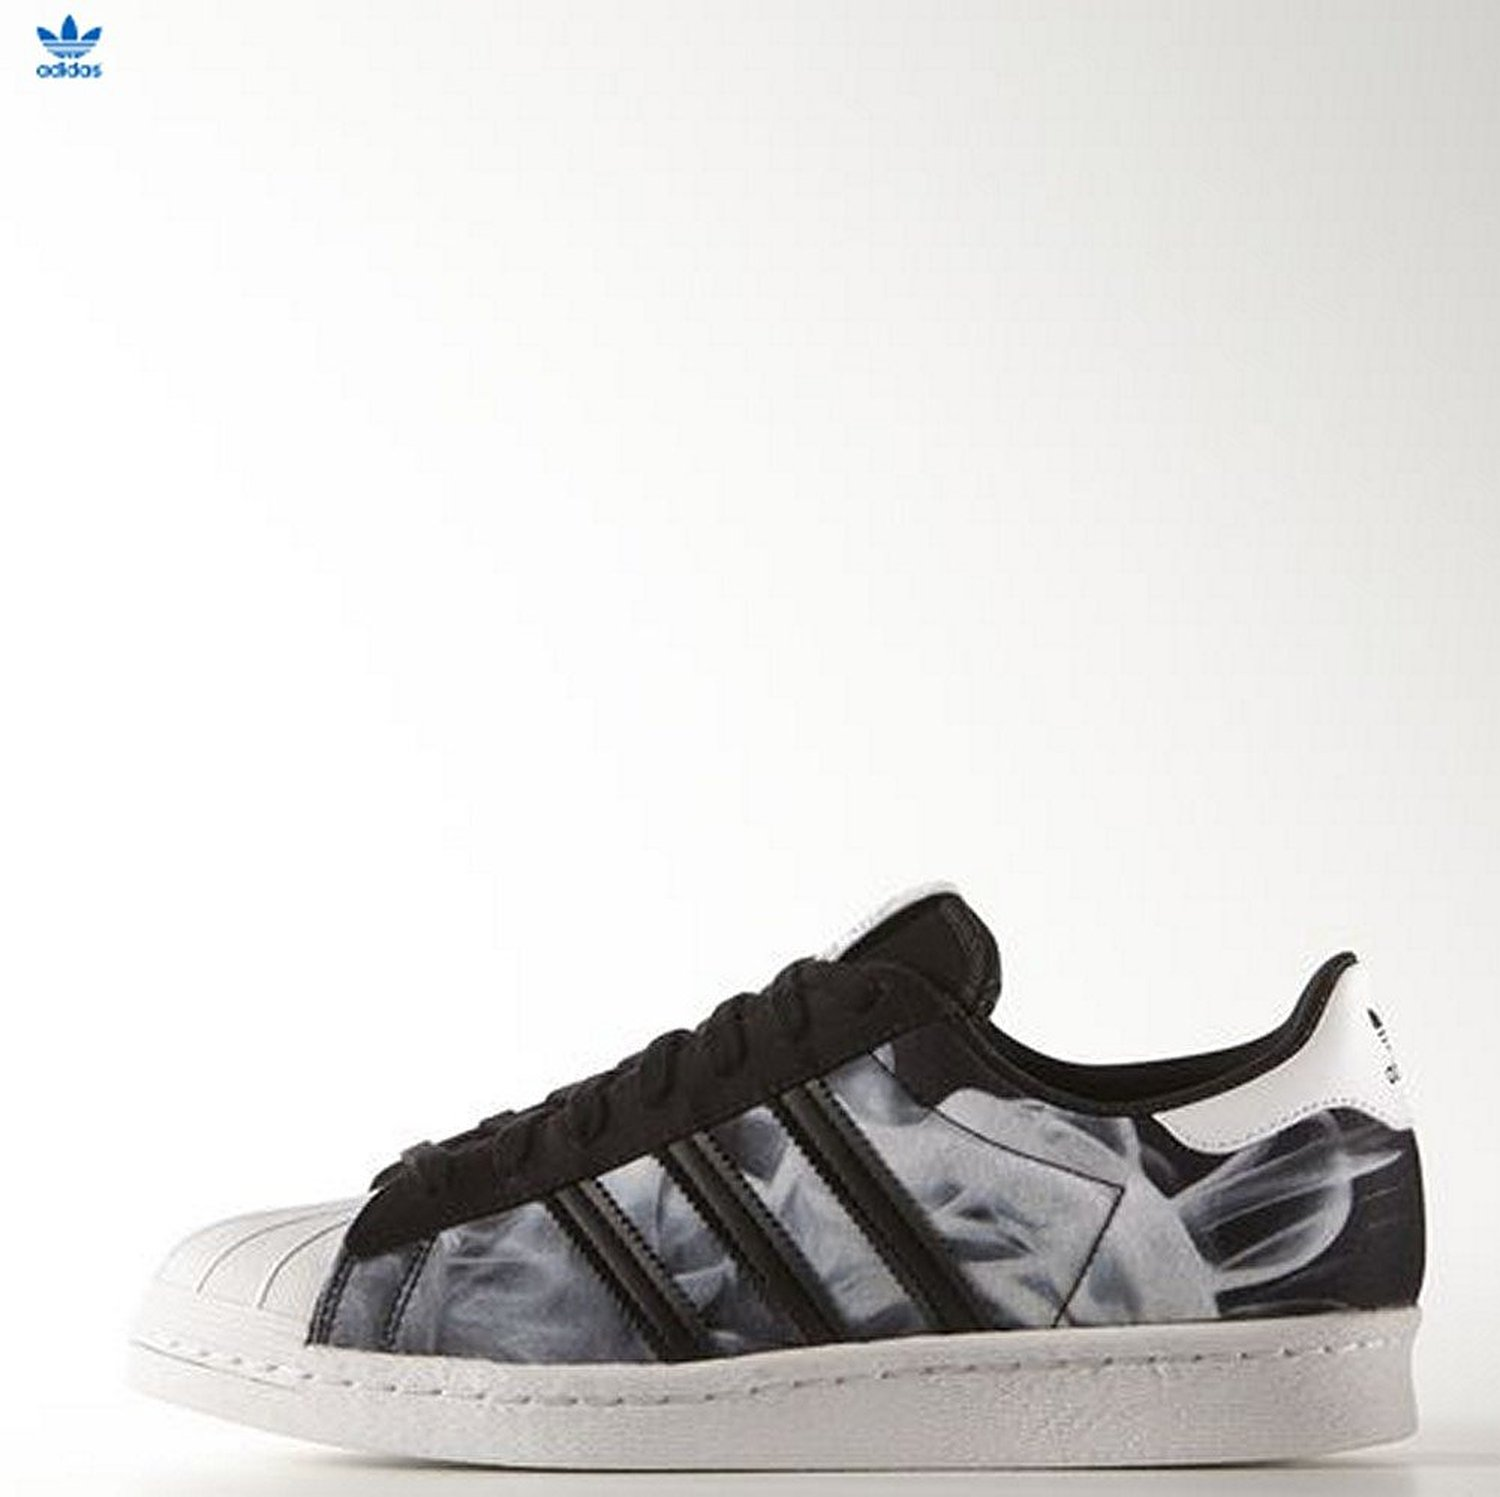 Adidas Originals Superstar womens | Amazon.com